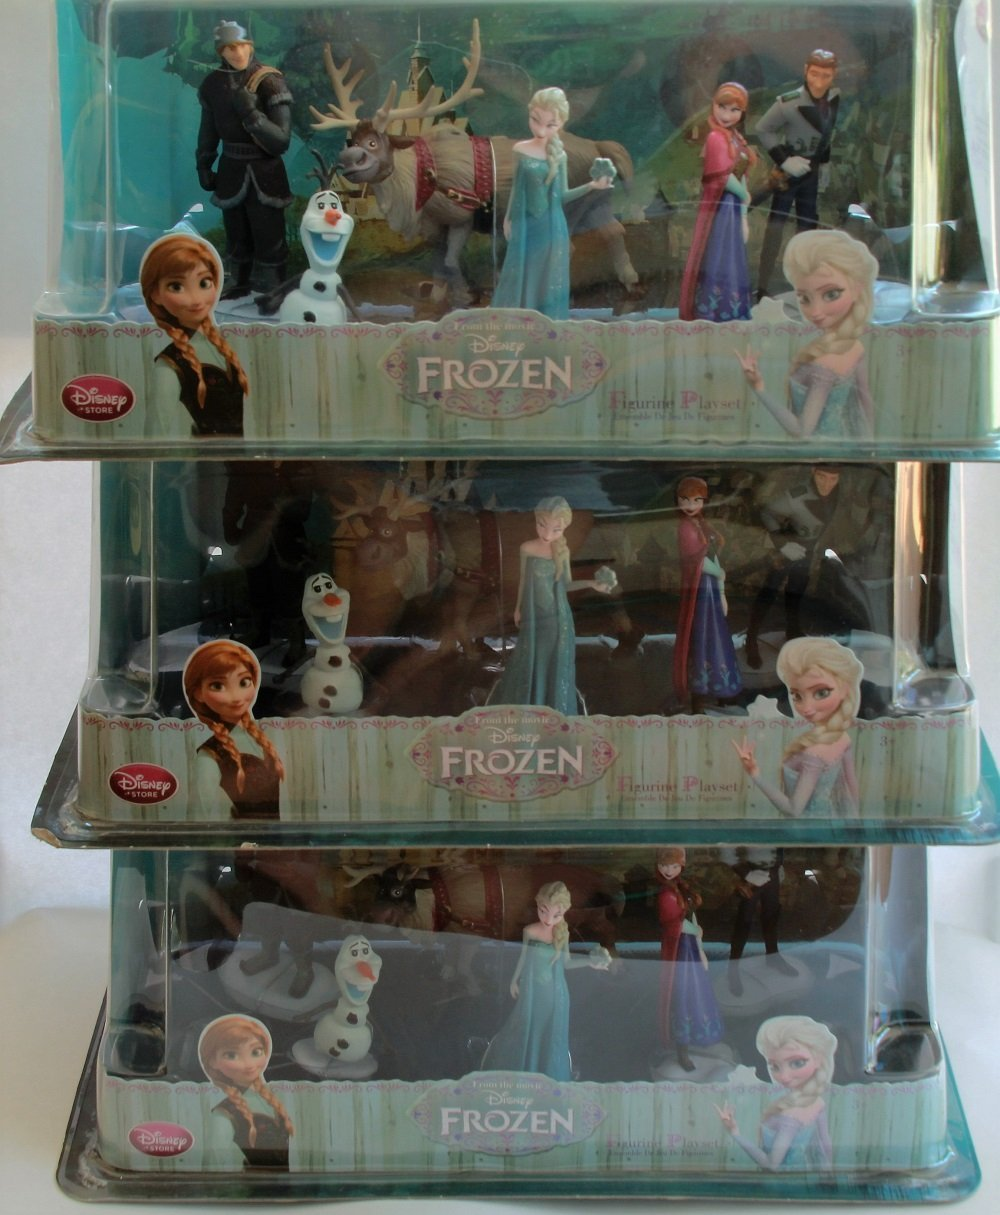 Disney's Frozen Figurine Playset, Pack of 3, Great Savings!